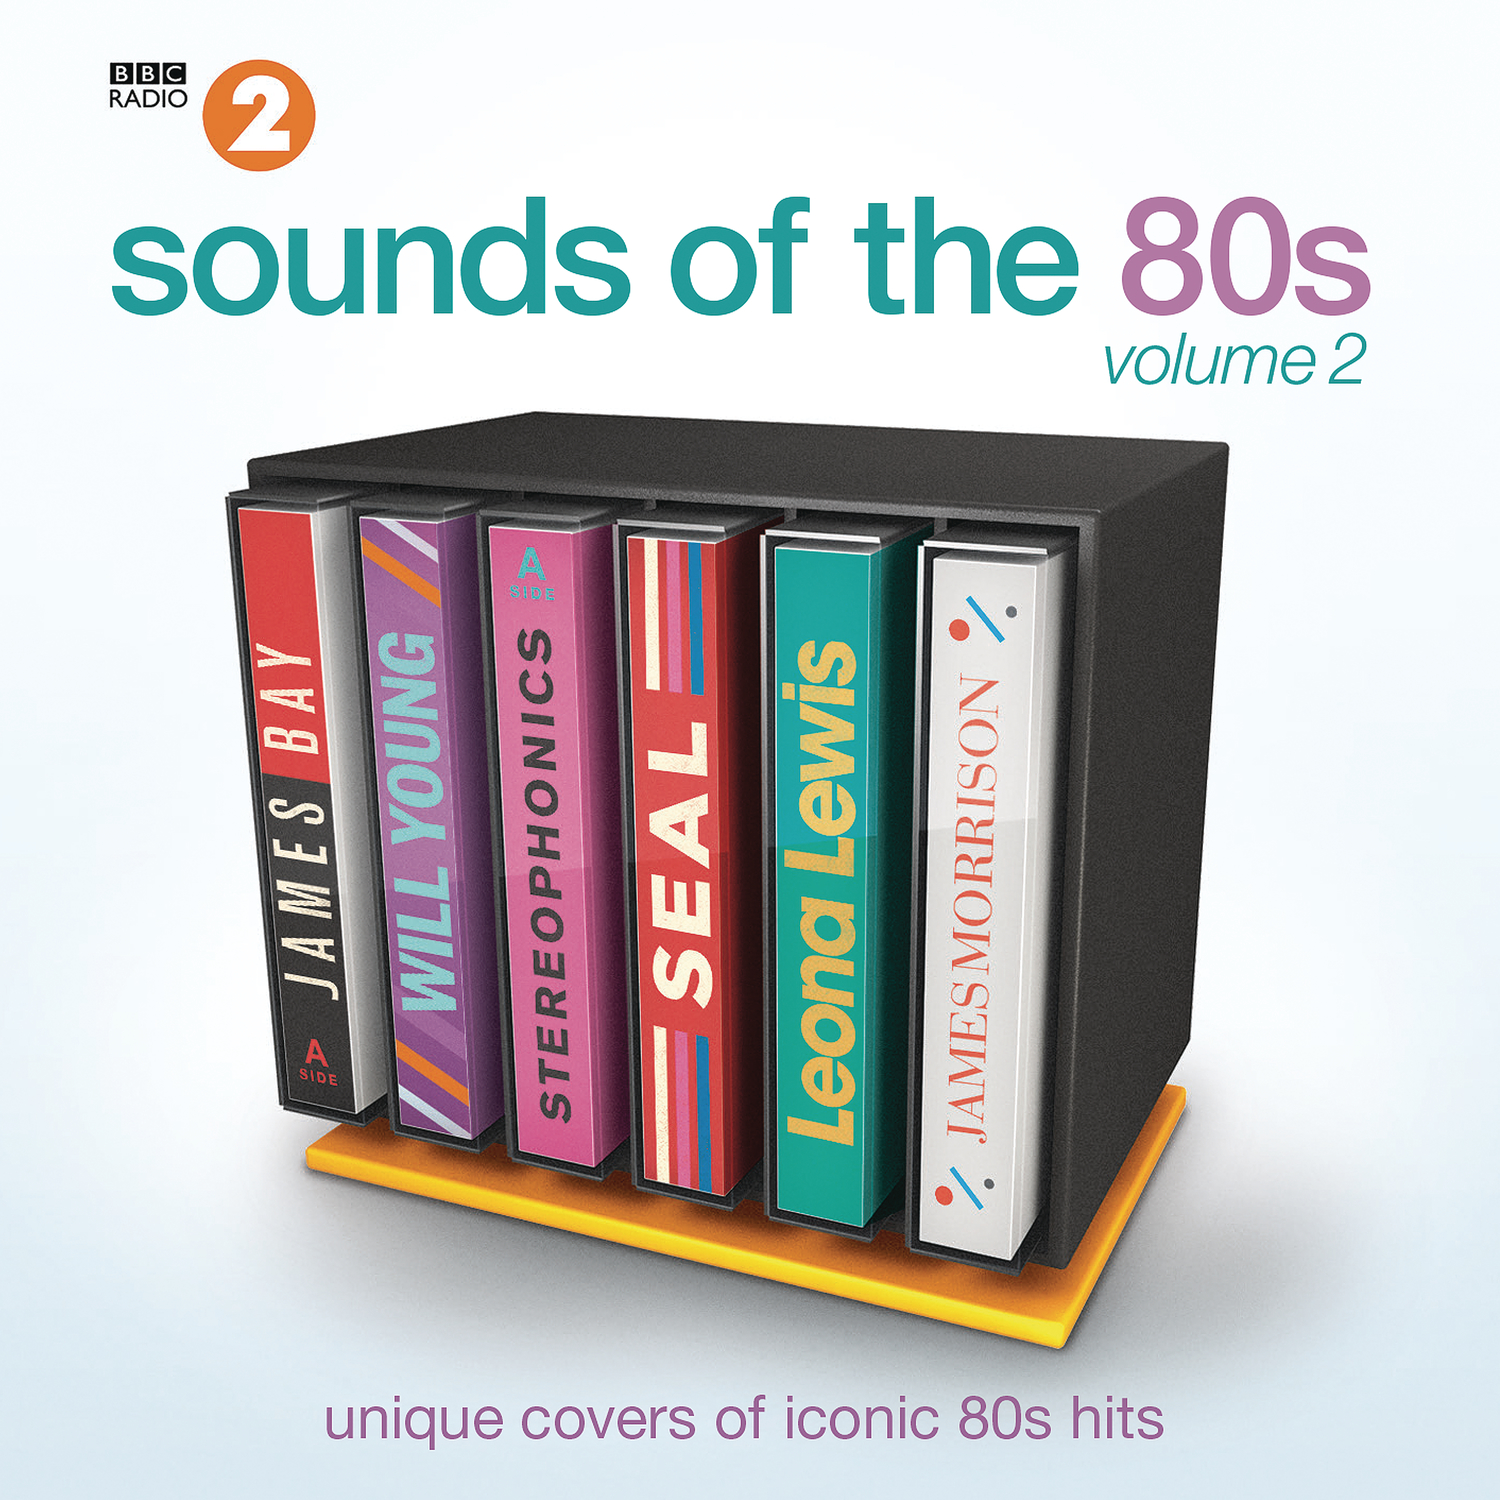 BBC Radio 2 Sounds of the 80s, Vol. 2